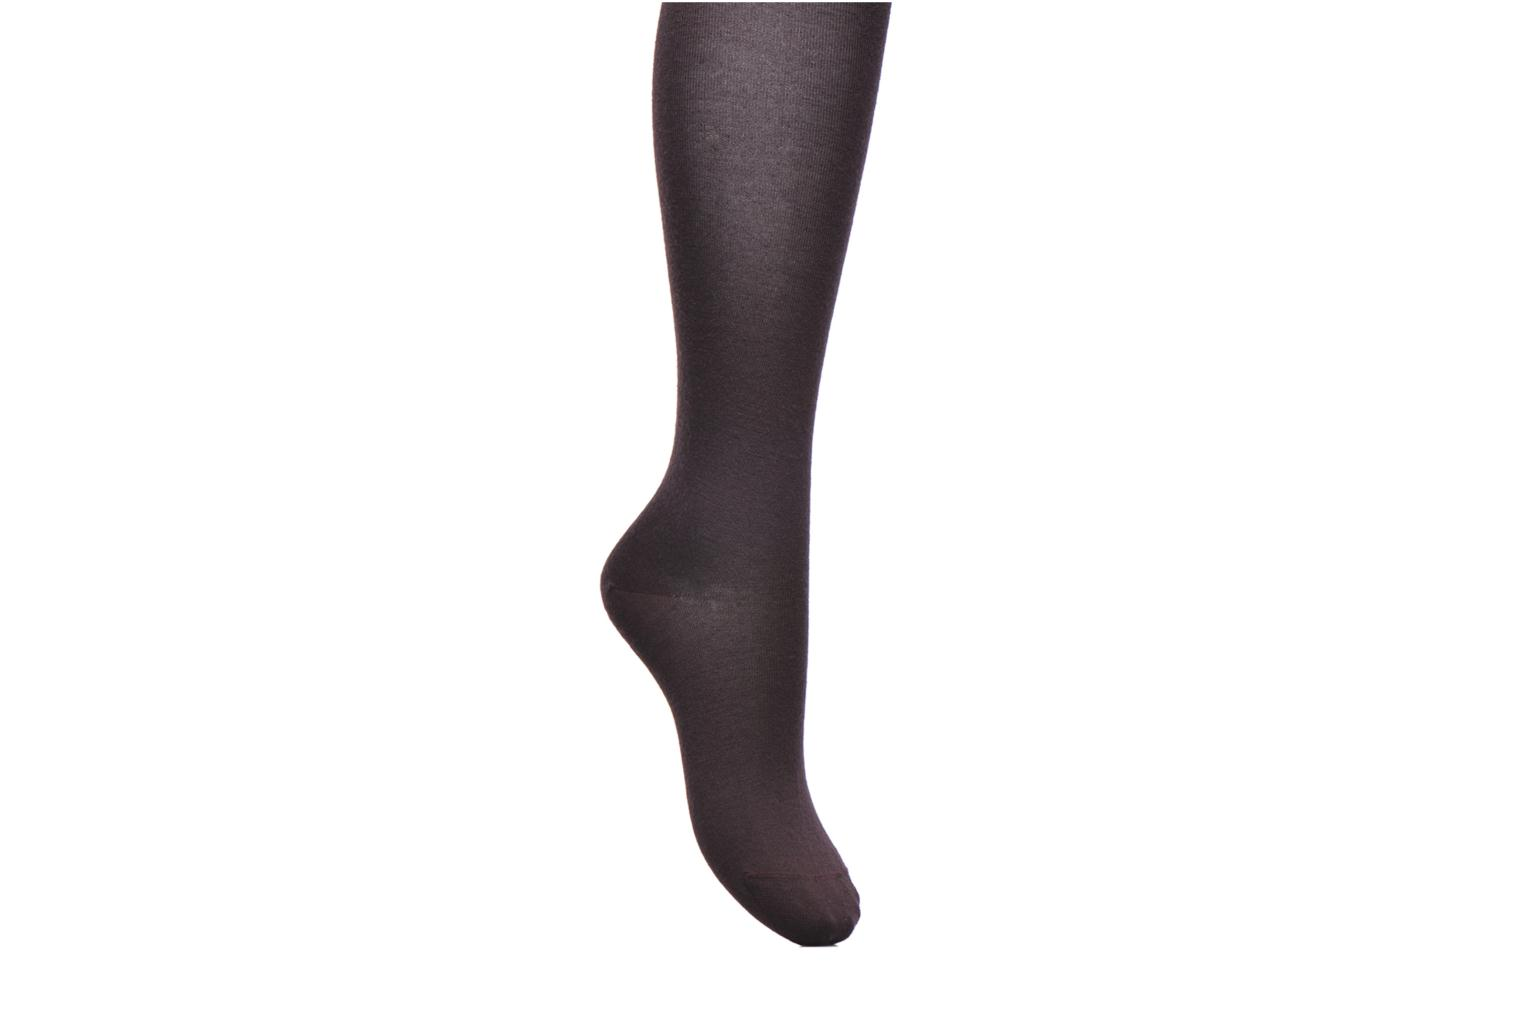 Socks & tights BLEUFORÊT Collants Laine Fine Intérieur Coton Burgundy detailed view/ Pair view